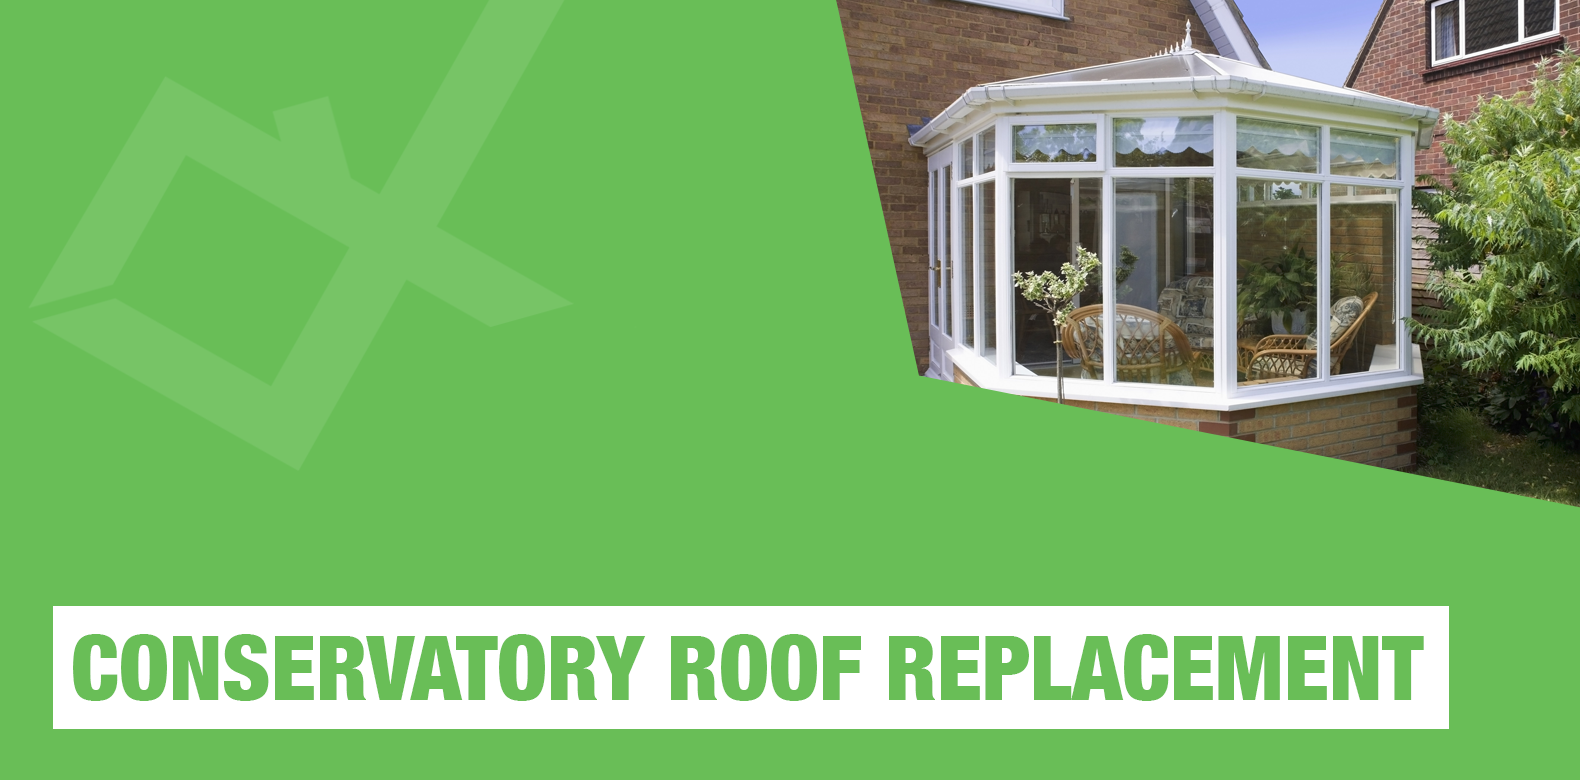 Conservatory Roof Replacement: What You Need to Know